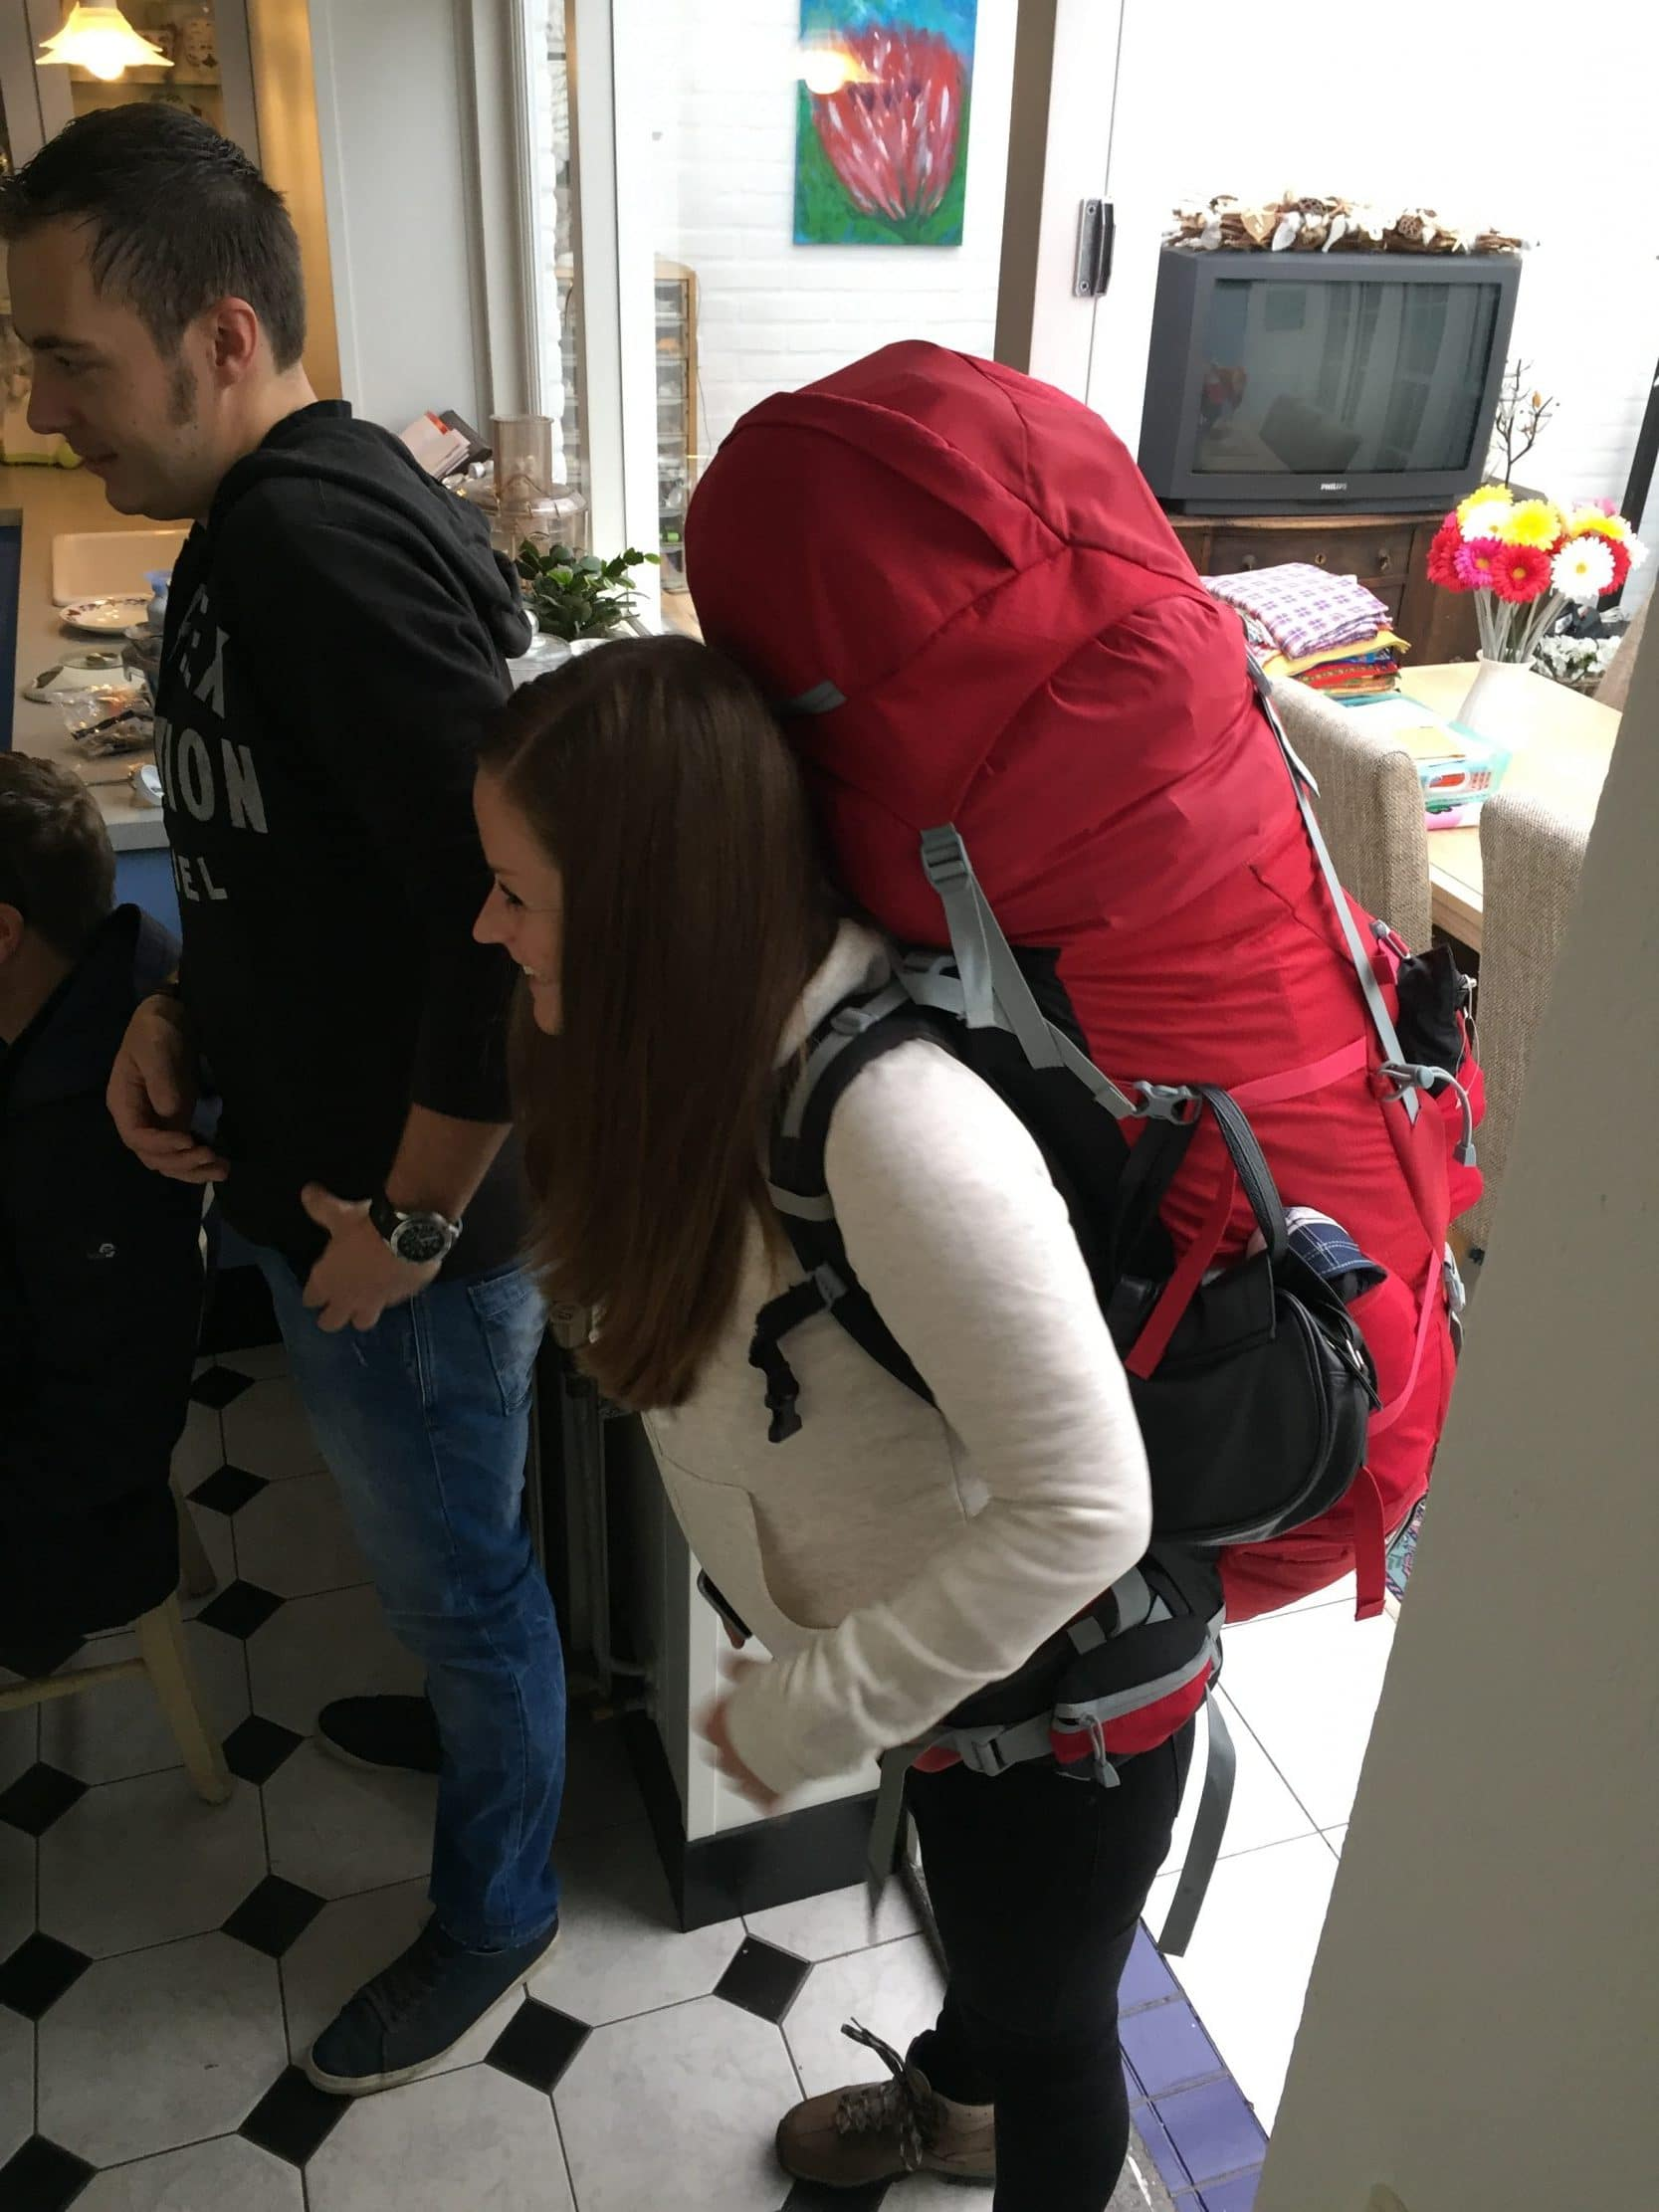 Manon with backpack at home